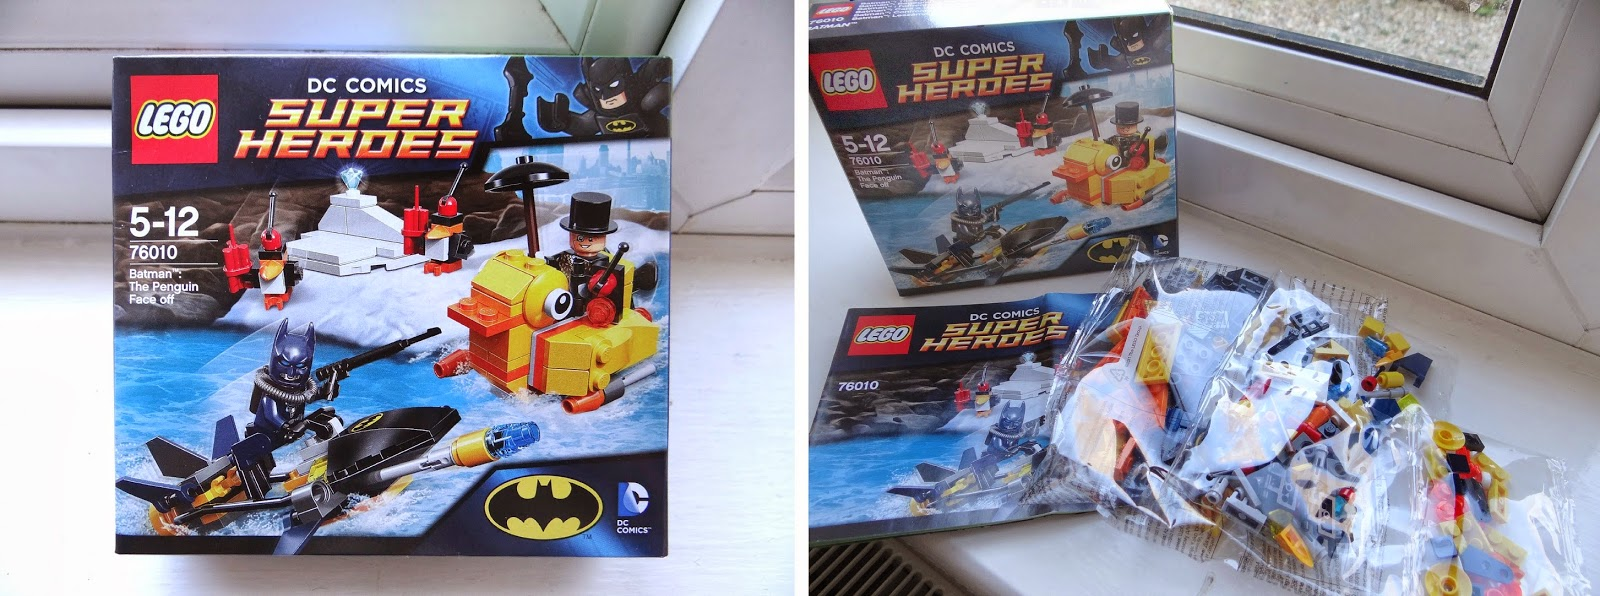 LEGO Spring 2014, LEGO DC Superheroes Batman: The Penguin Face Off, LEGO Batman